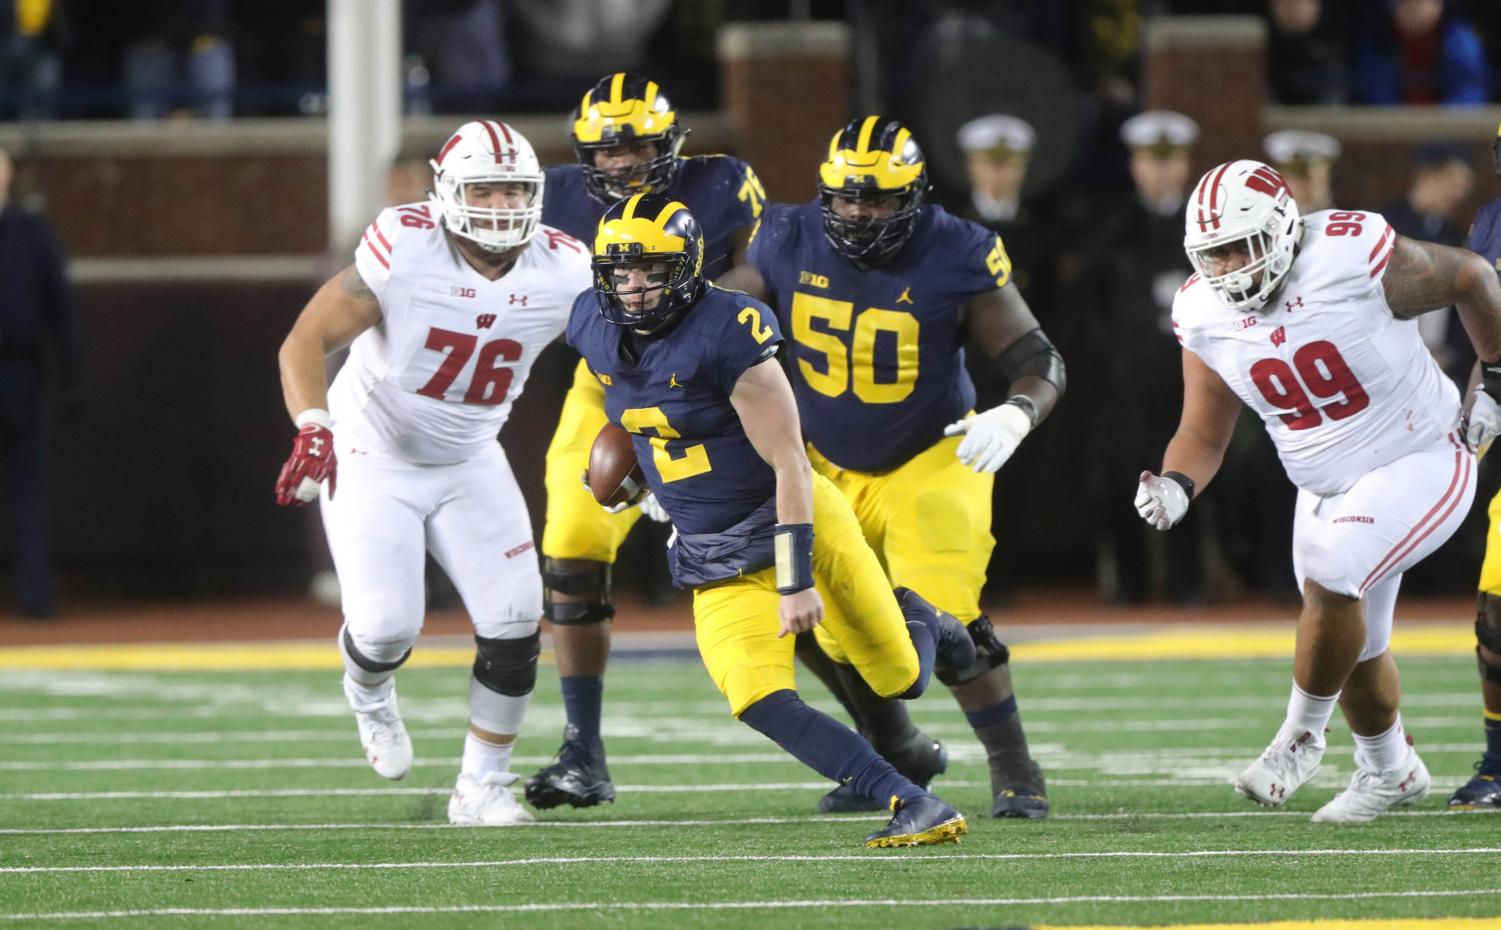 Michigan quarterback Shea Patterson (2) runs the ball against Wisconsin in the first half on Saturday, Oct. 13, 2018, at Michigan Stadium in Ann Arbor, Mich. (Kirthmon F. Dozier/Detroit Free Press/TNS)